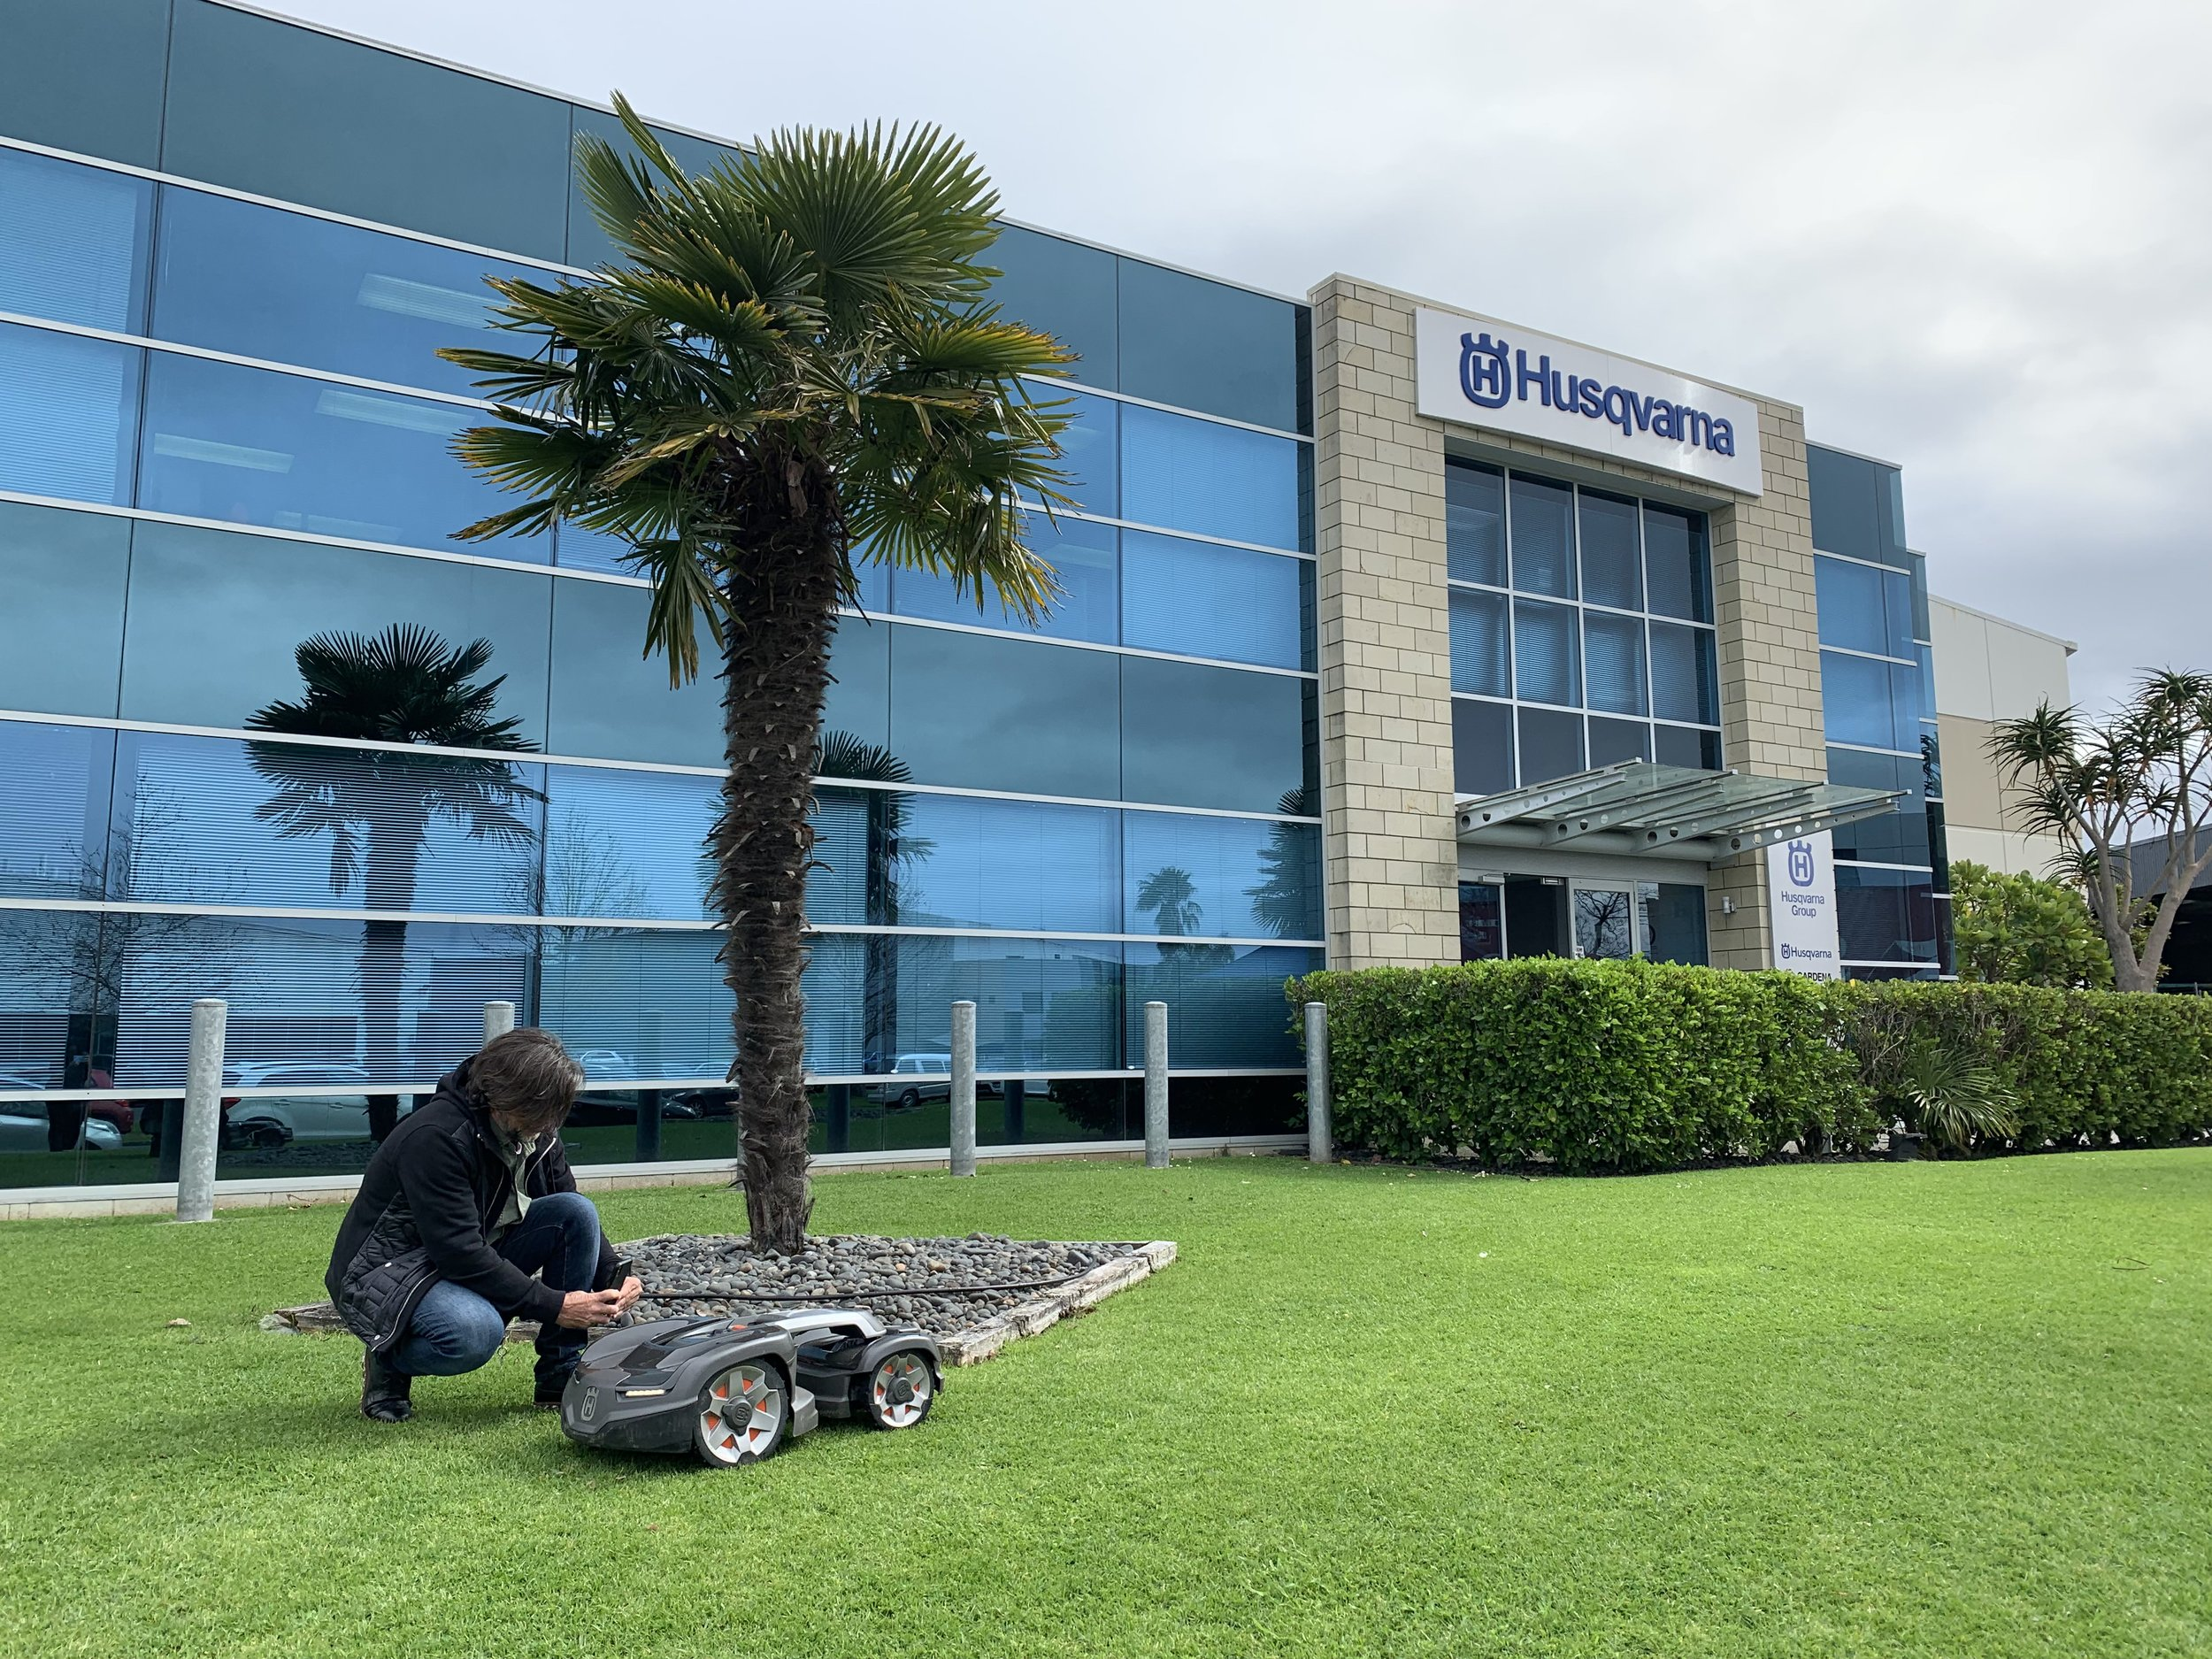 Crewcut CEO David Serville taking photos of the robotic lawn mower outside the Husqvarna office